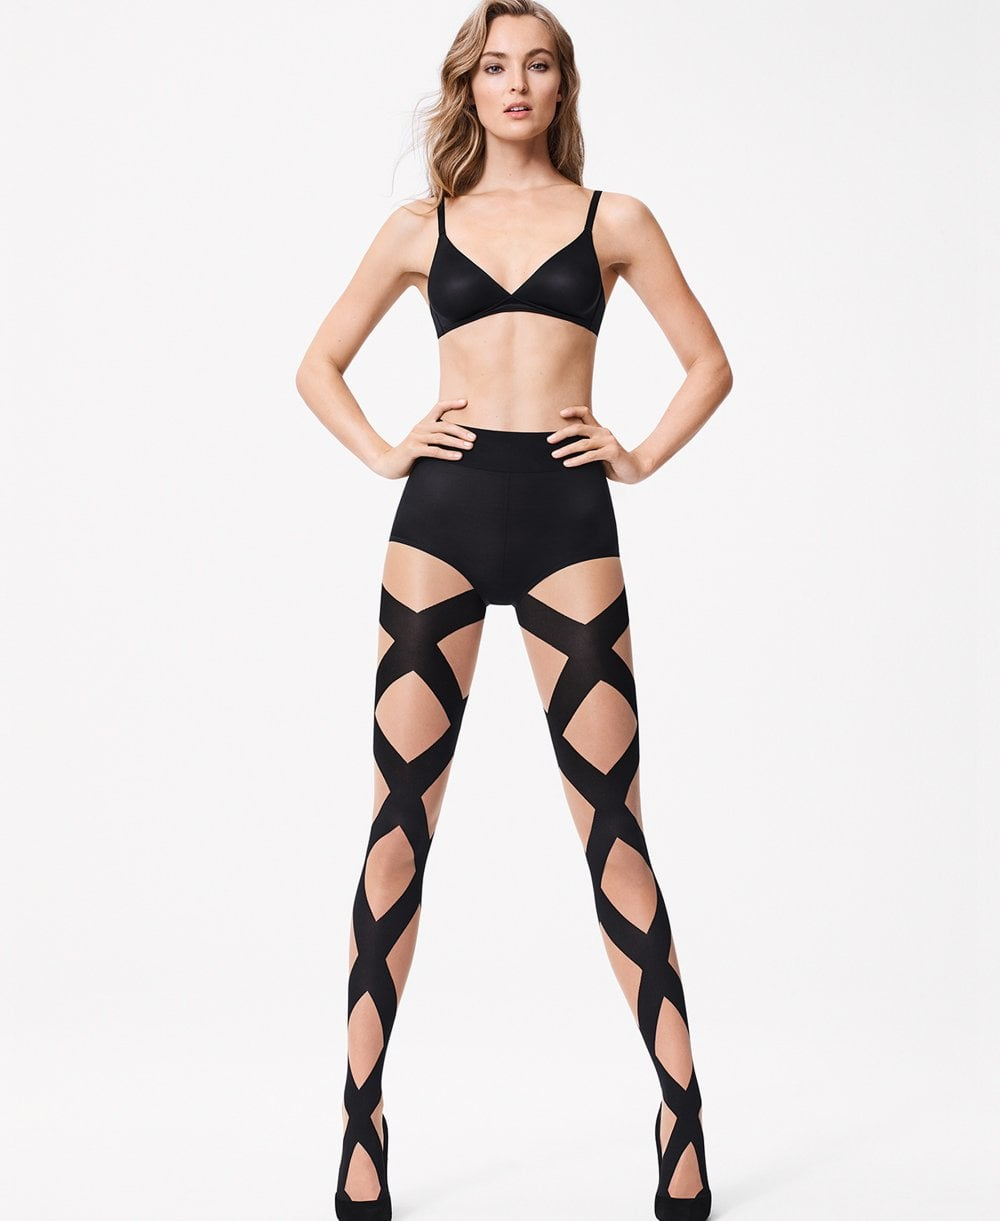 Wolford Anita Tights - Tights from luxury-legs.com UK d616236a3